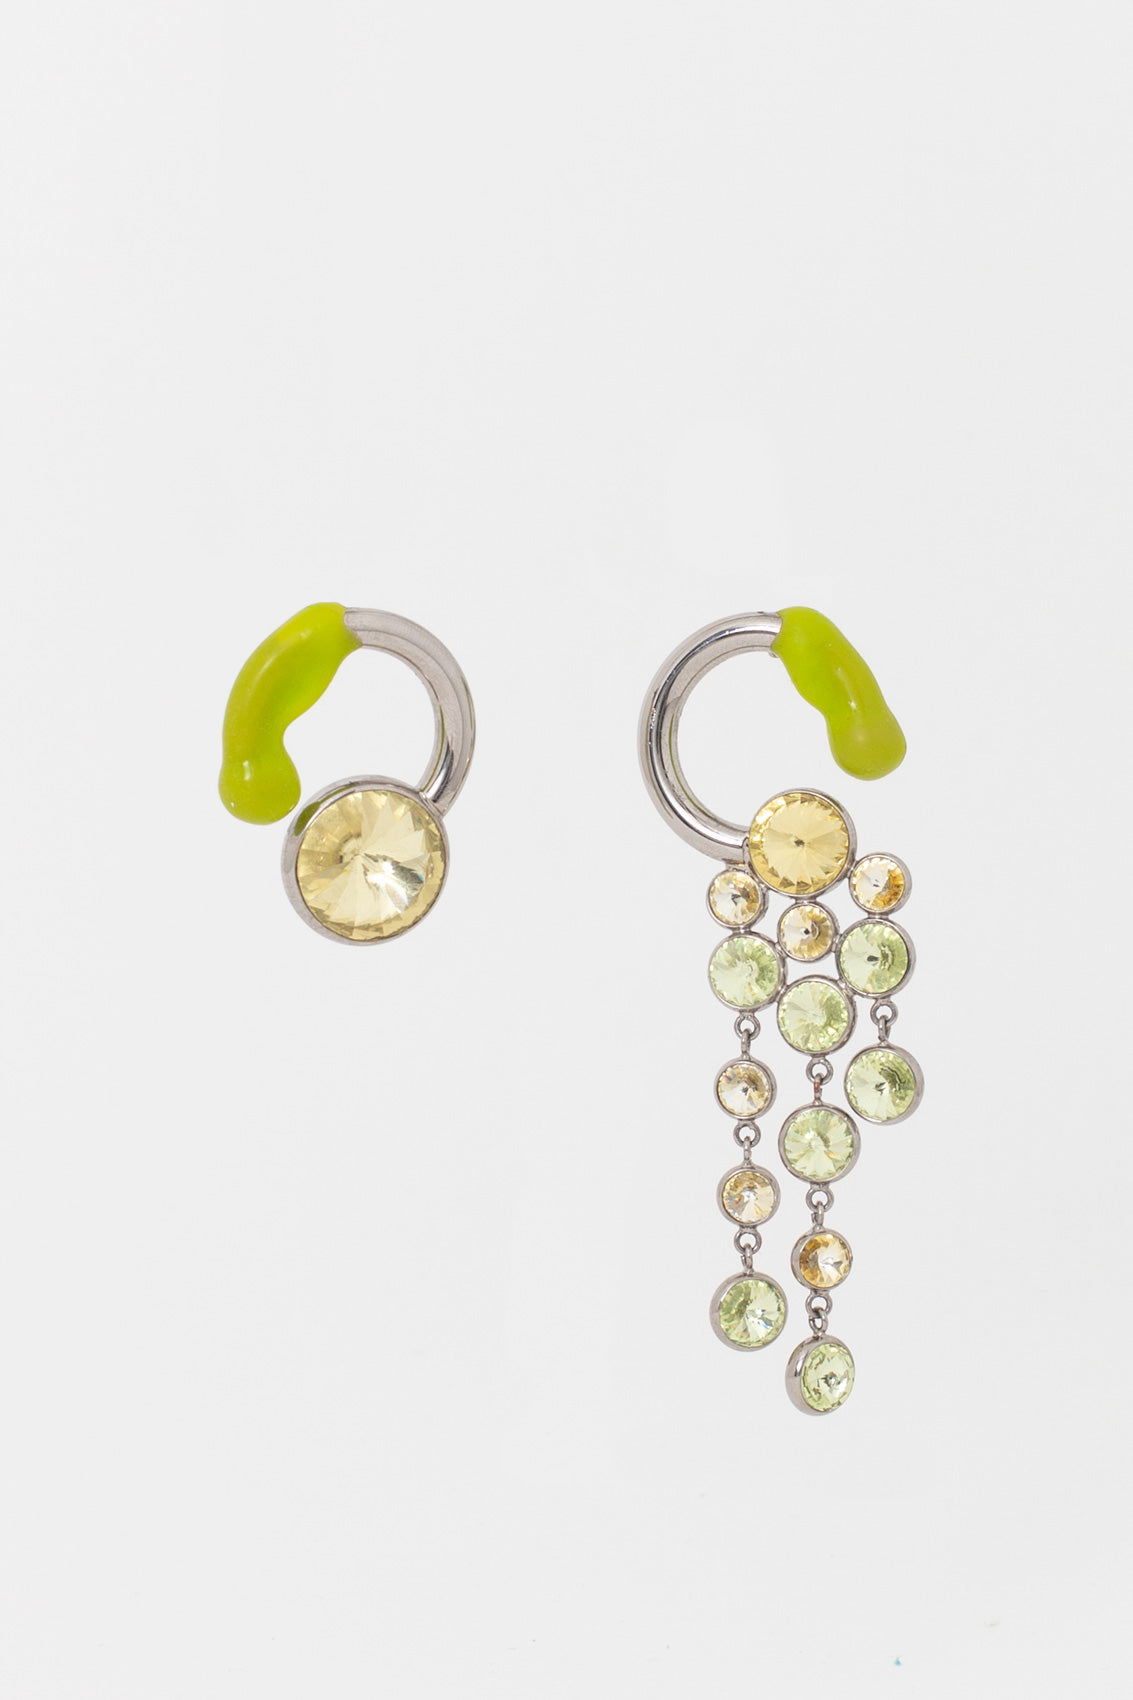 SILVER EARRINGS WITH GREEN & YELLOW DETAILS